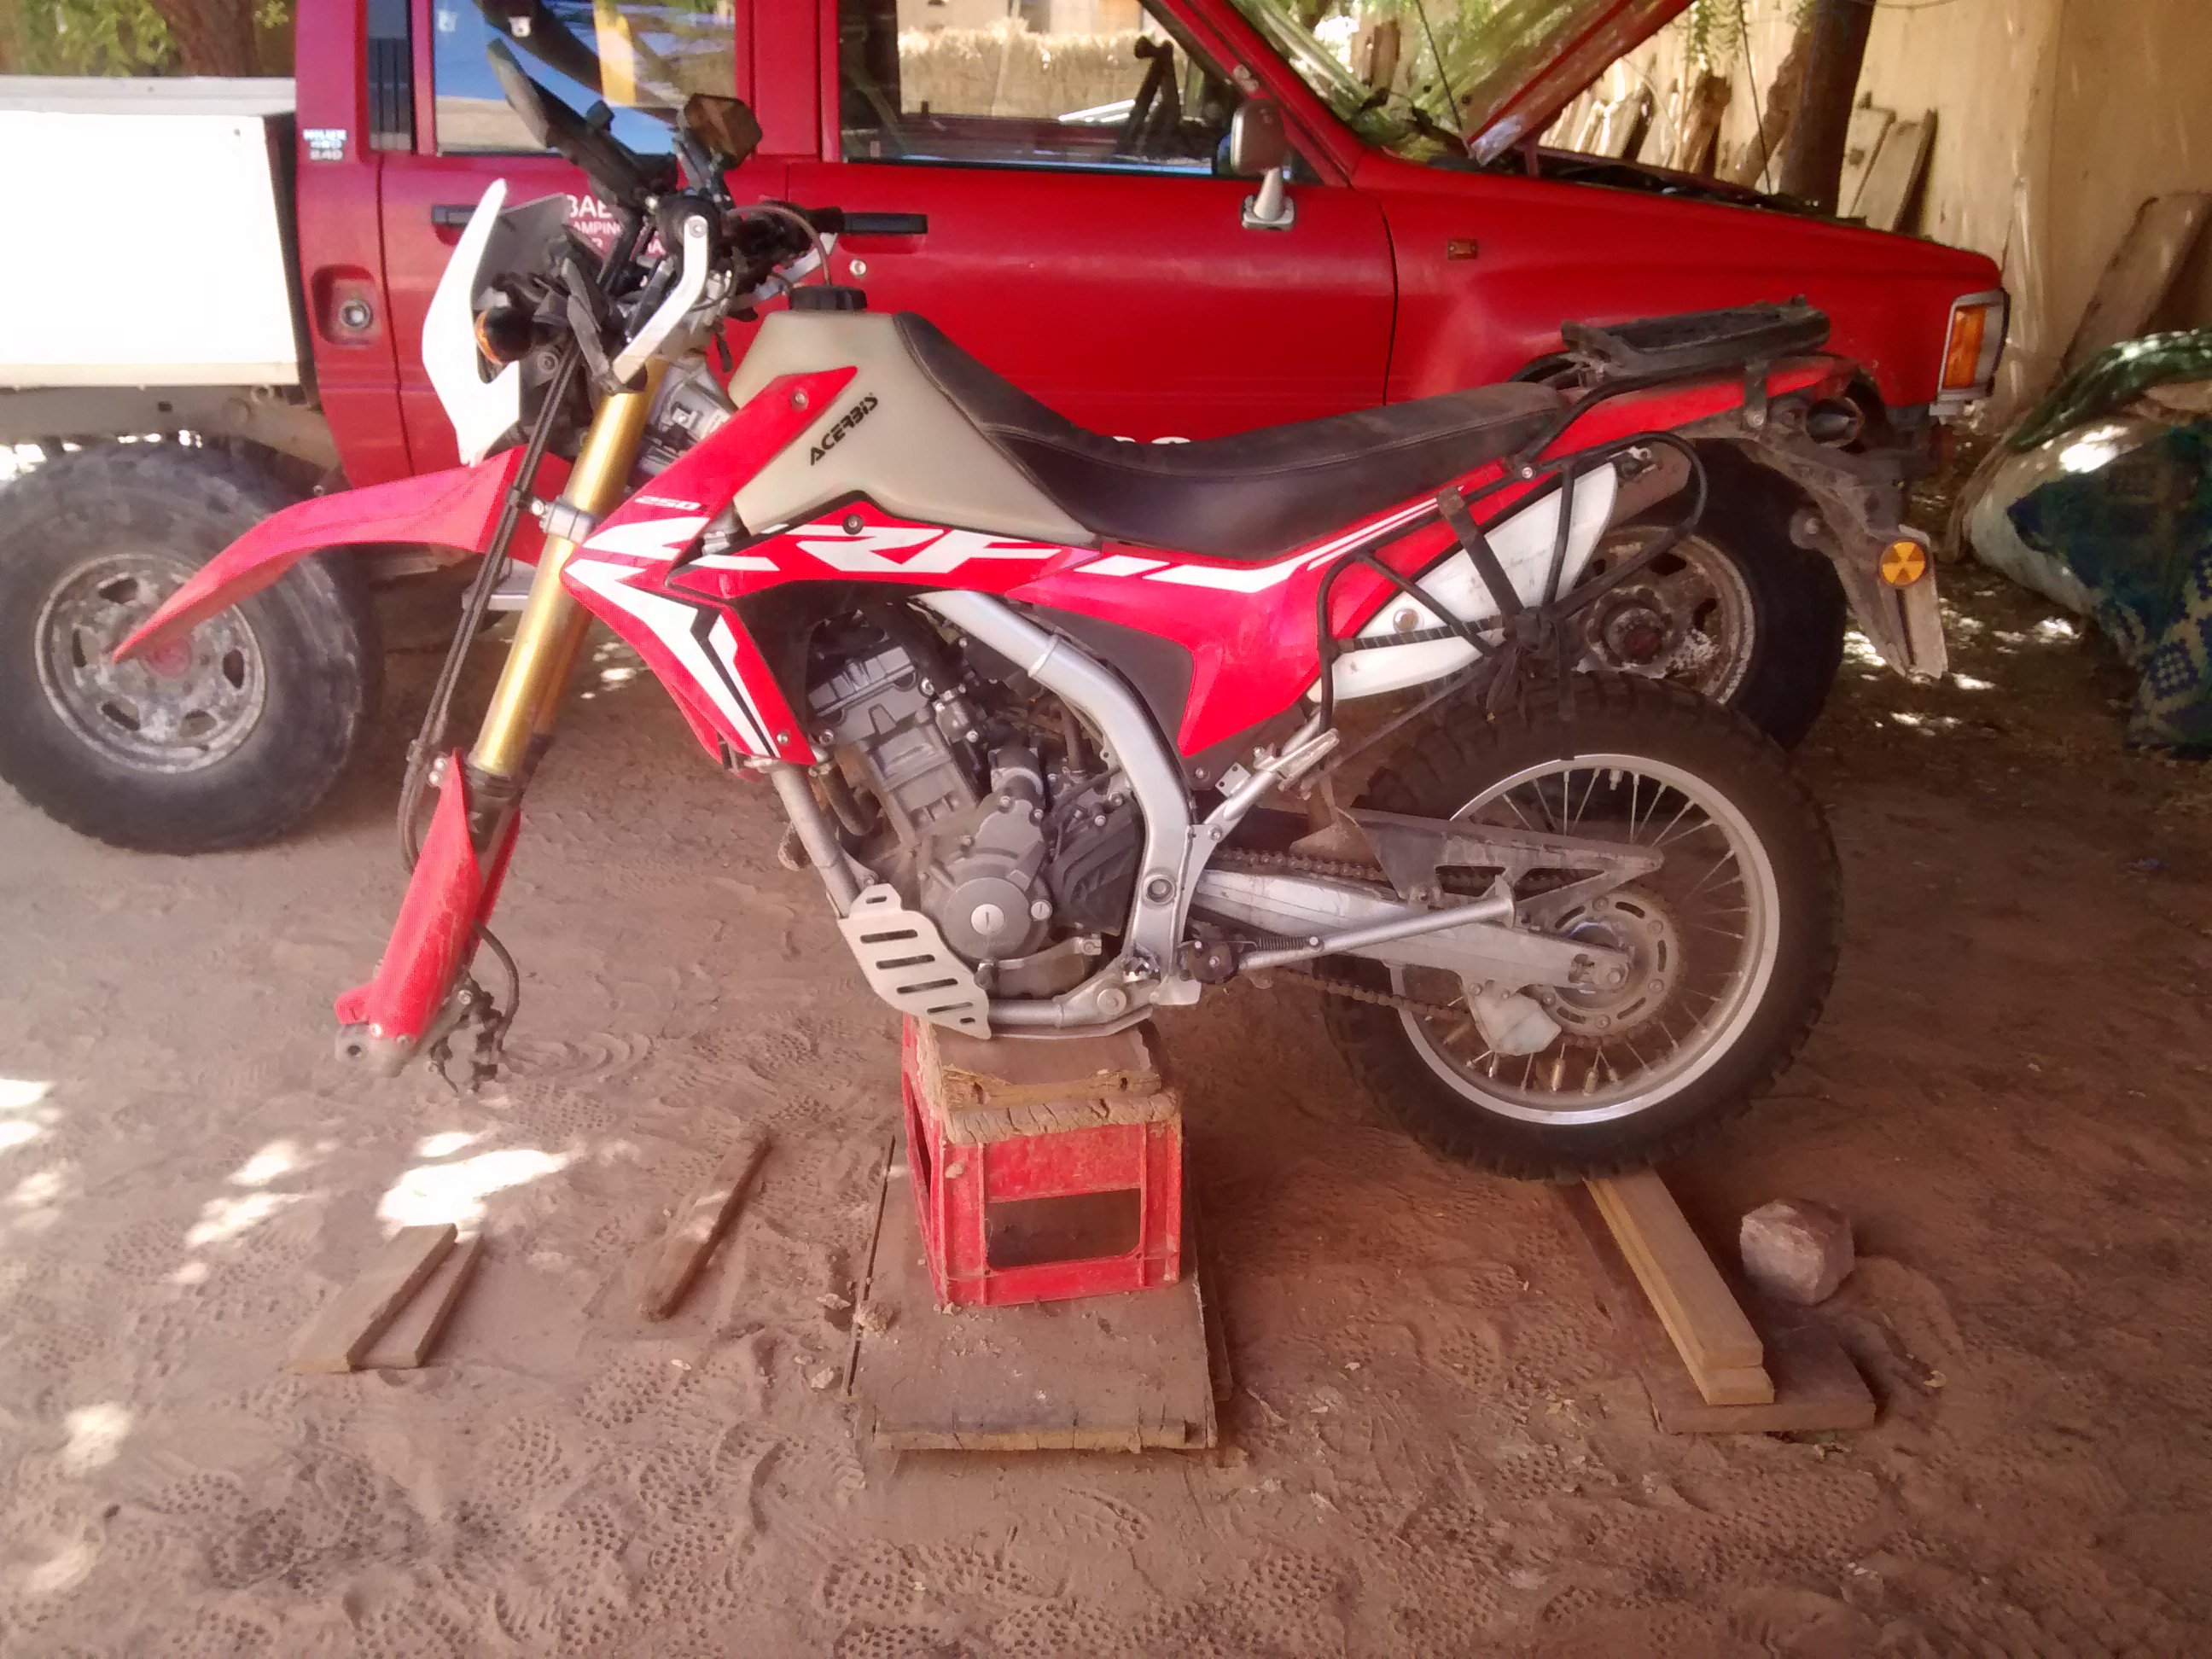 Honda CRF250L on makeshift stand with front wheel removed.